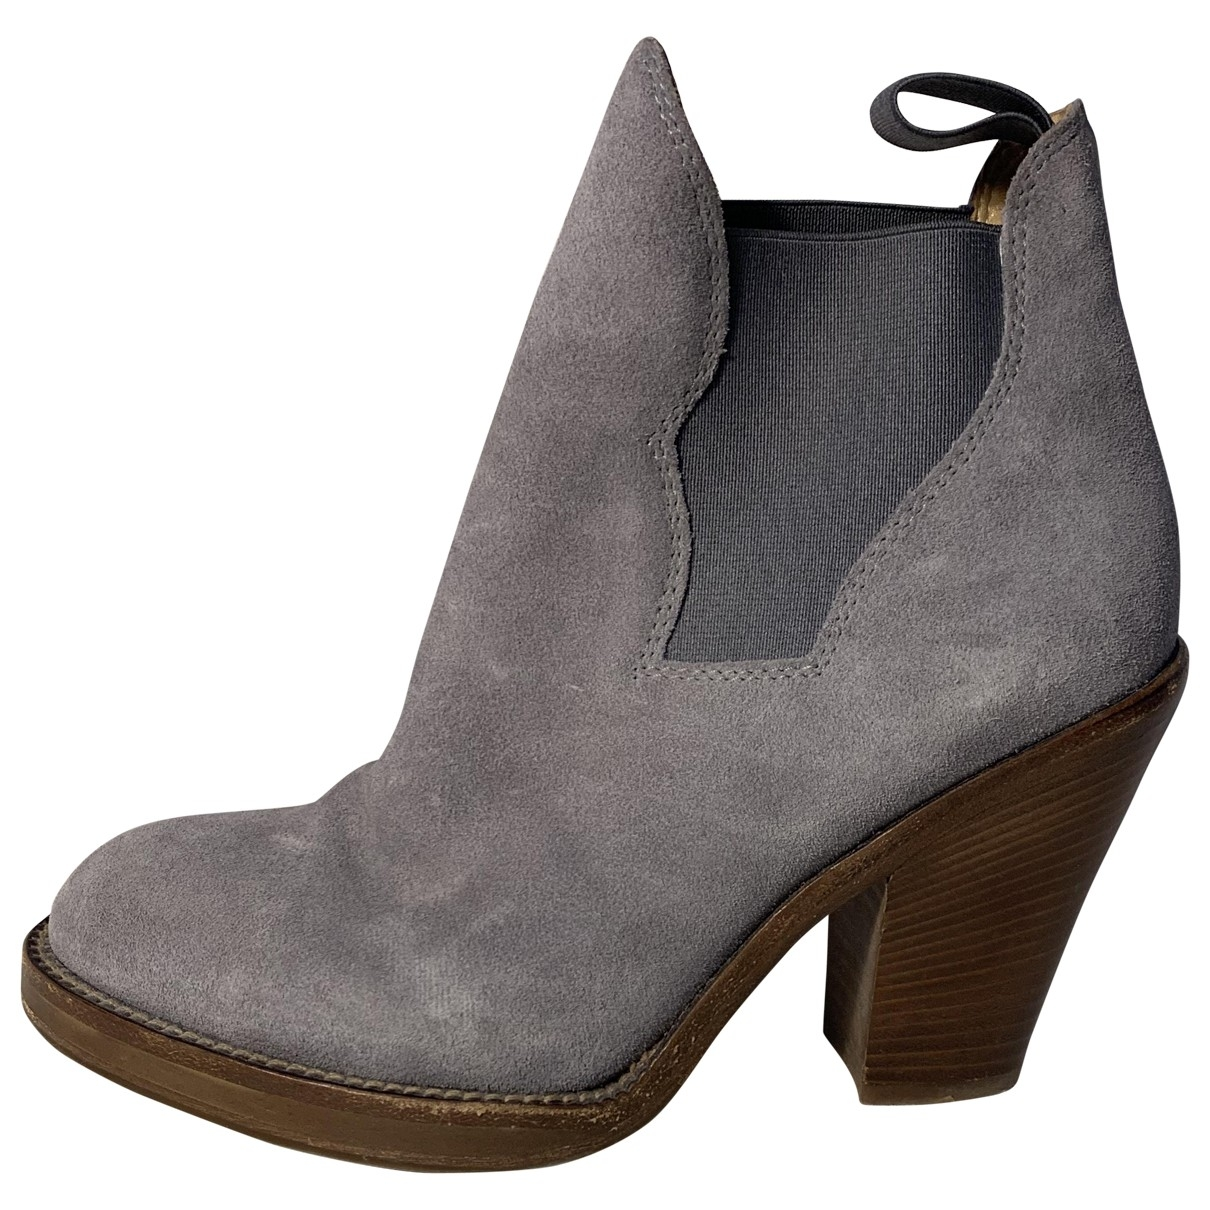 Acne Studios Star Grey Suede Ankle boots for Women 36 EU